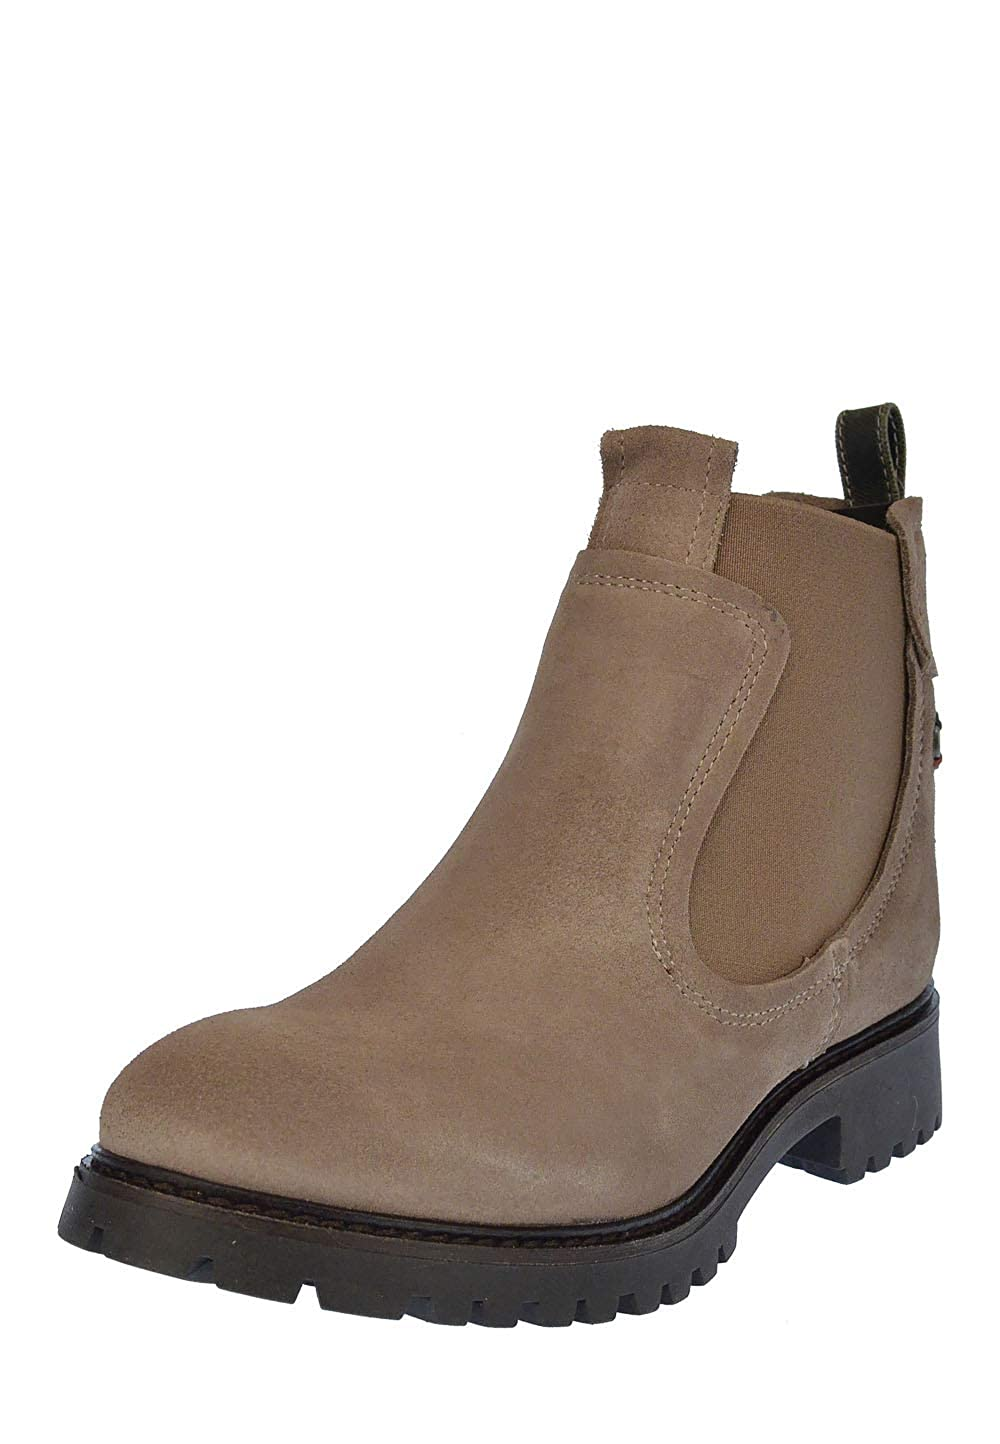 US Polo Assn. Ladies Chelsea Boots Gray Brown, tamaño:36: Amazon ...